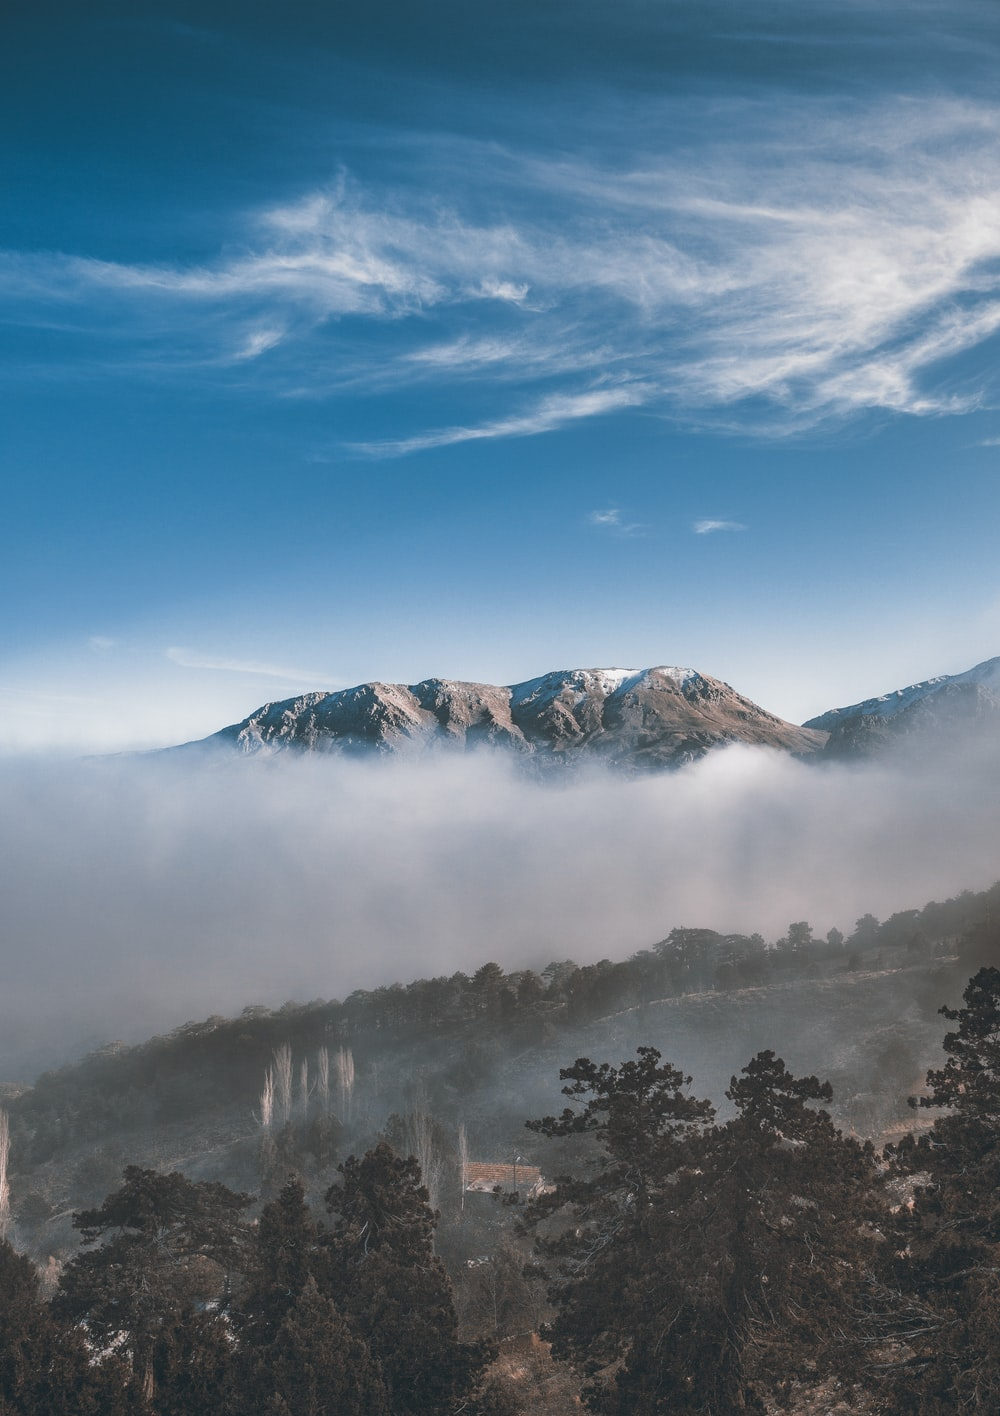 landscape photography of gray and white mountain